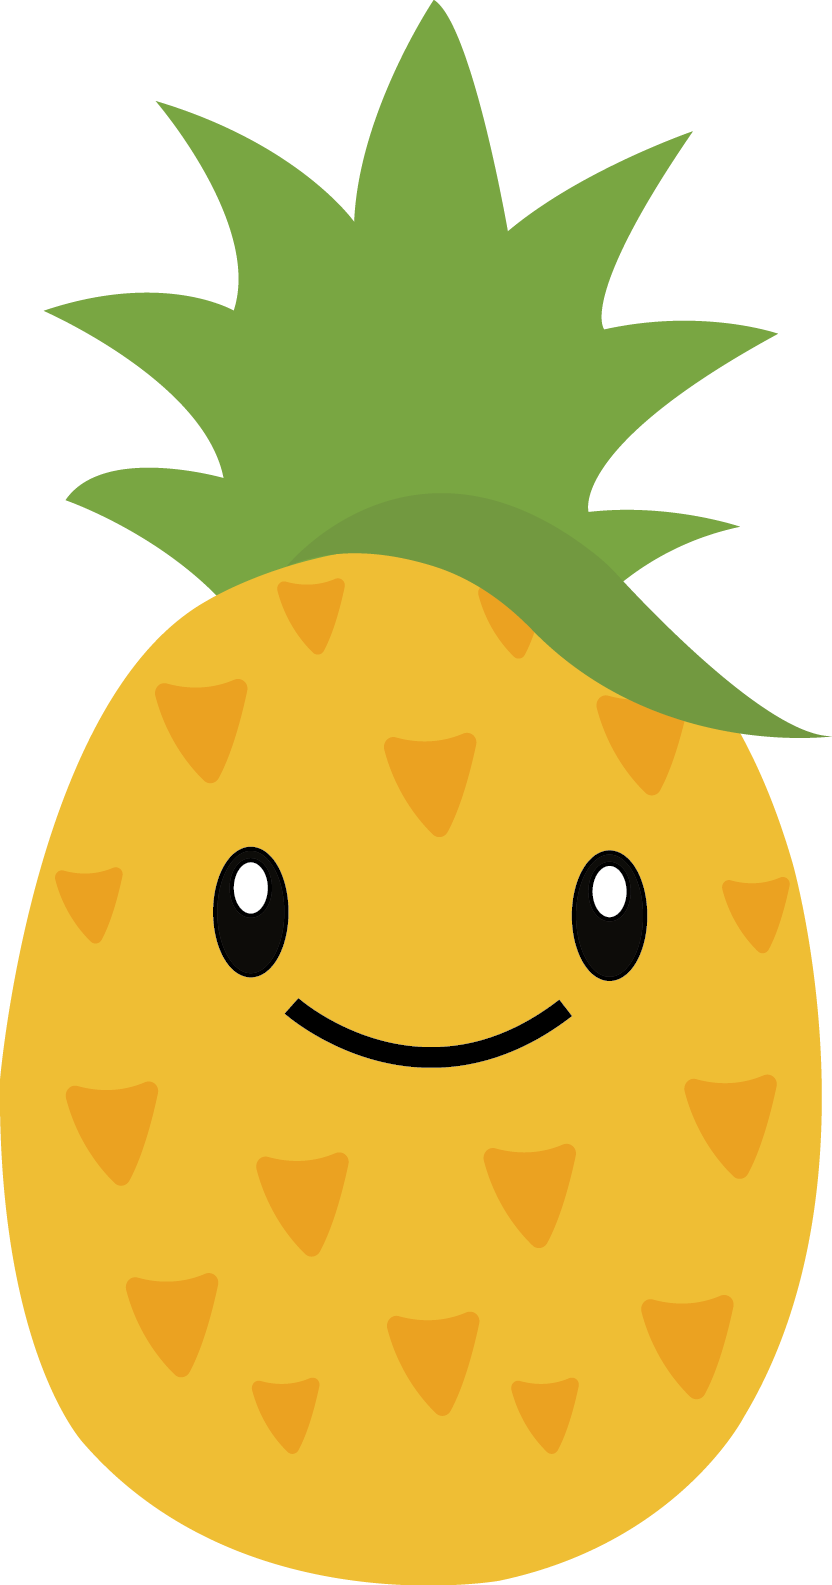 clipart pineapple nutrition